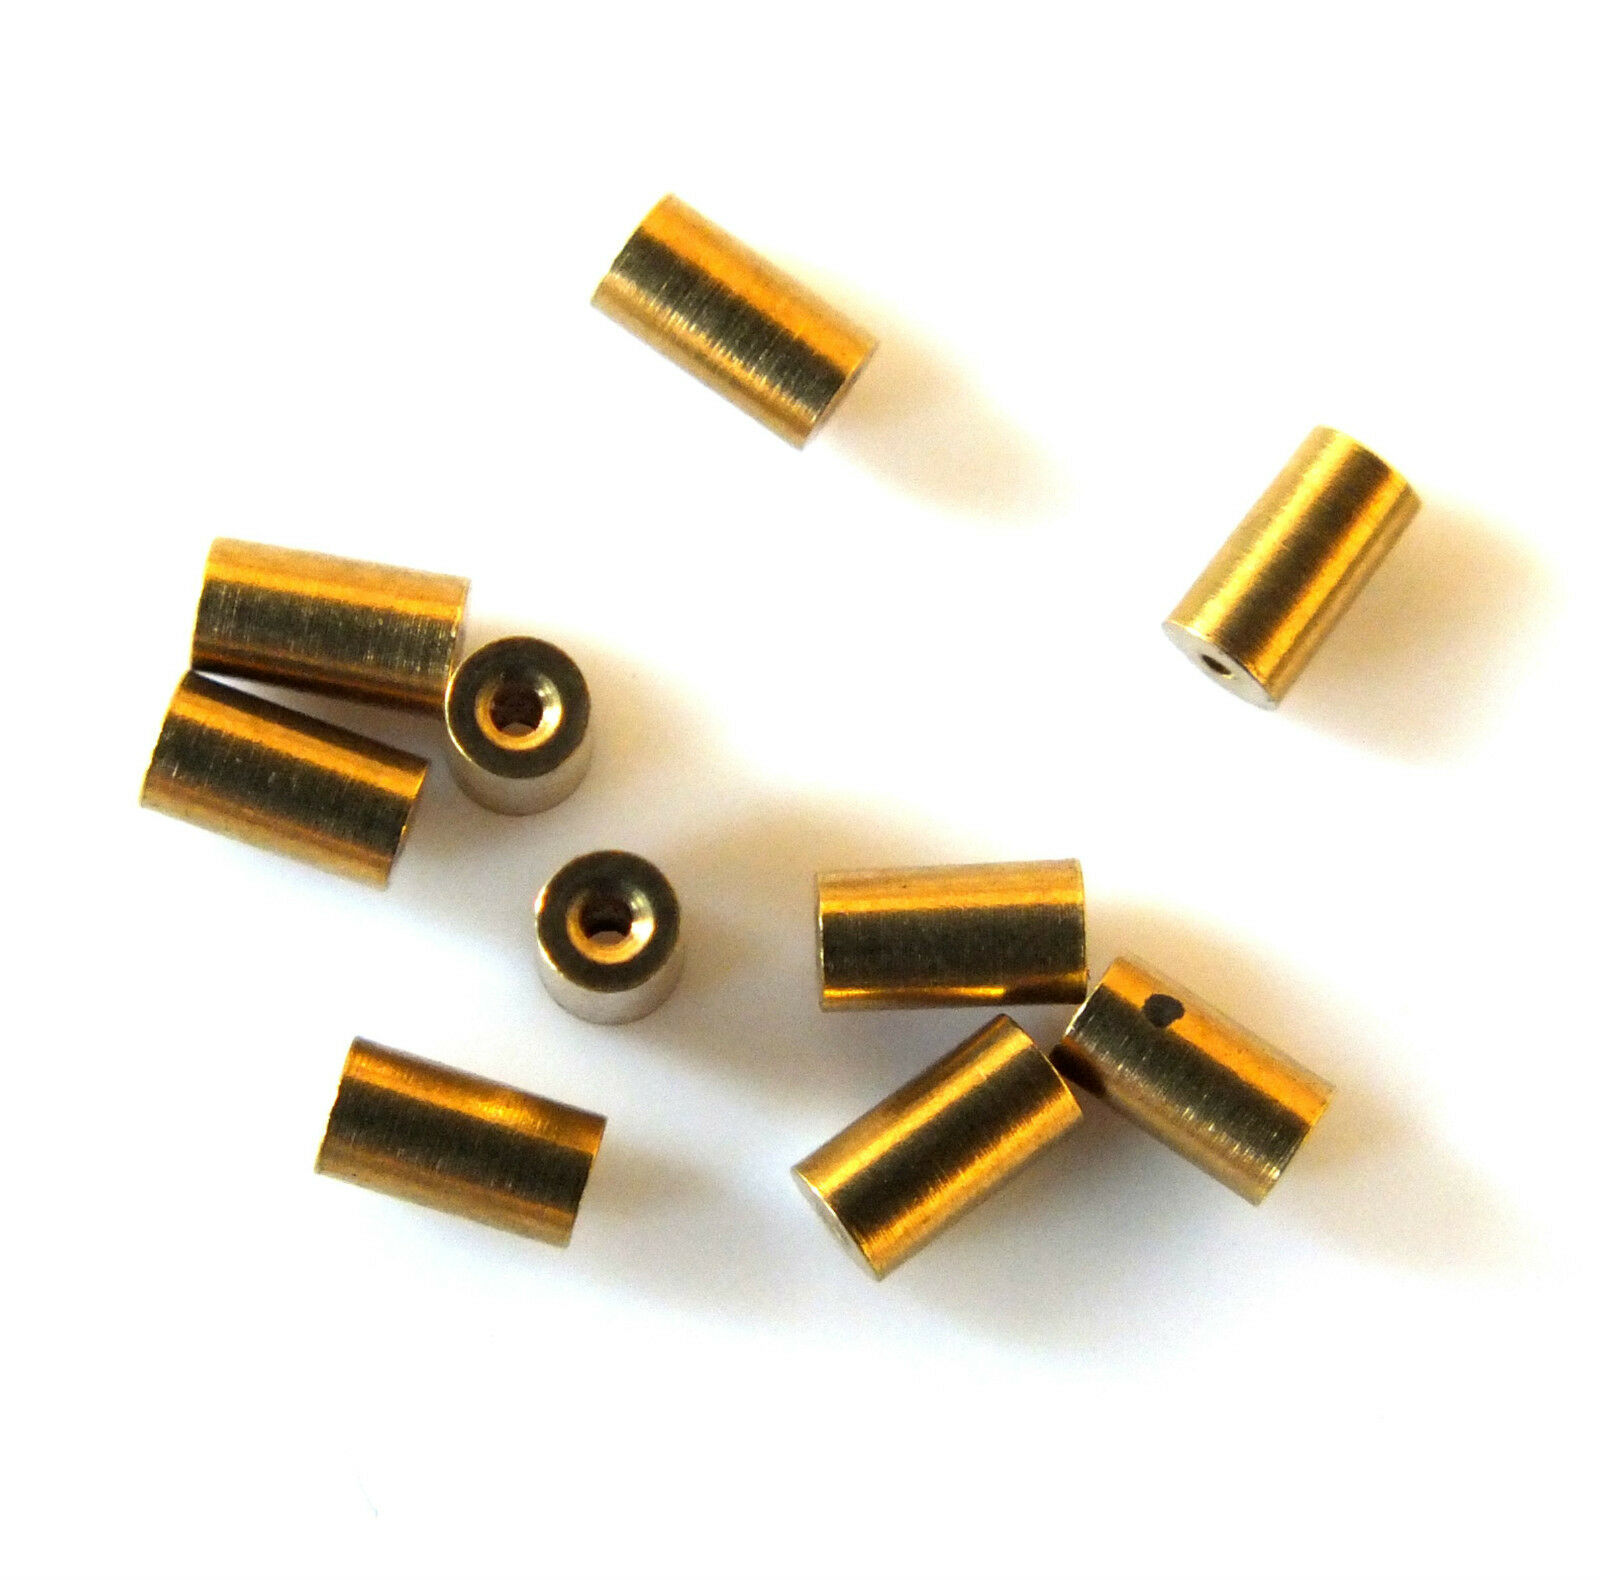 10x TAPERED CLOCK BUSH BUSHES INSIDE 0.8mm OUTSIDE 2.1mm - 2.2mm x 4mm LONG